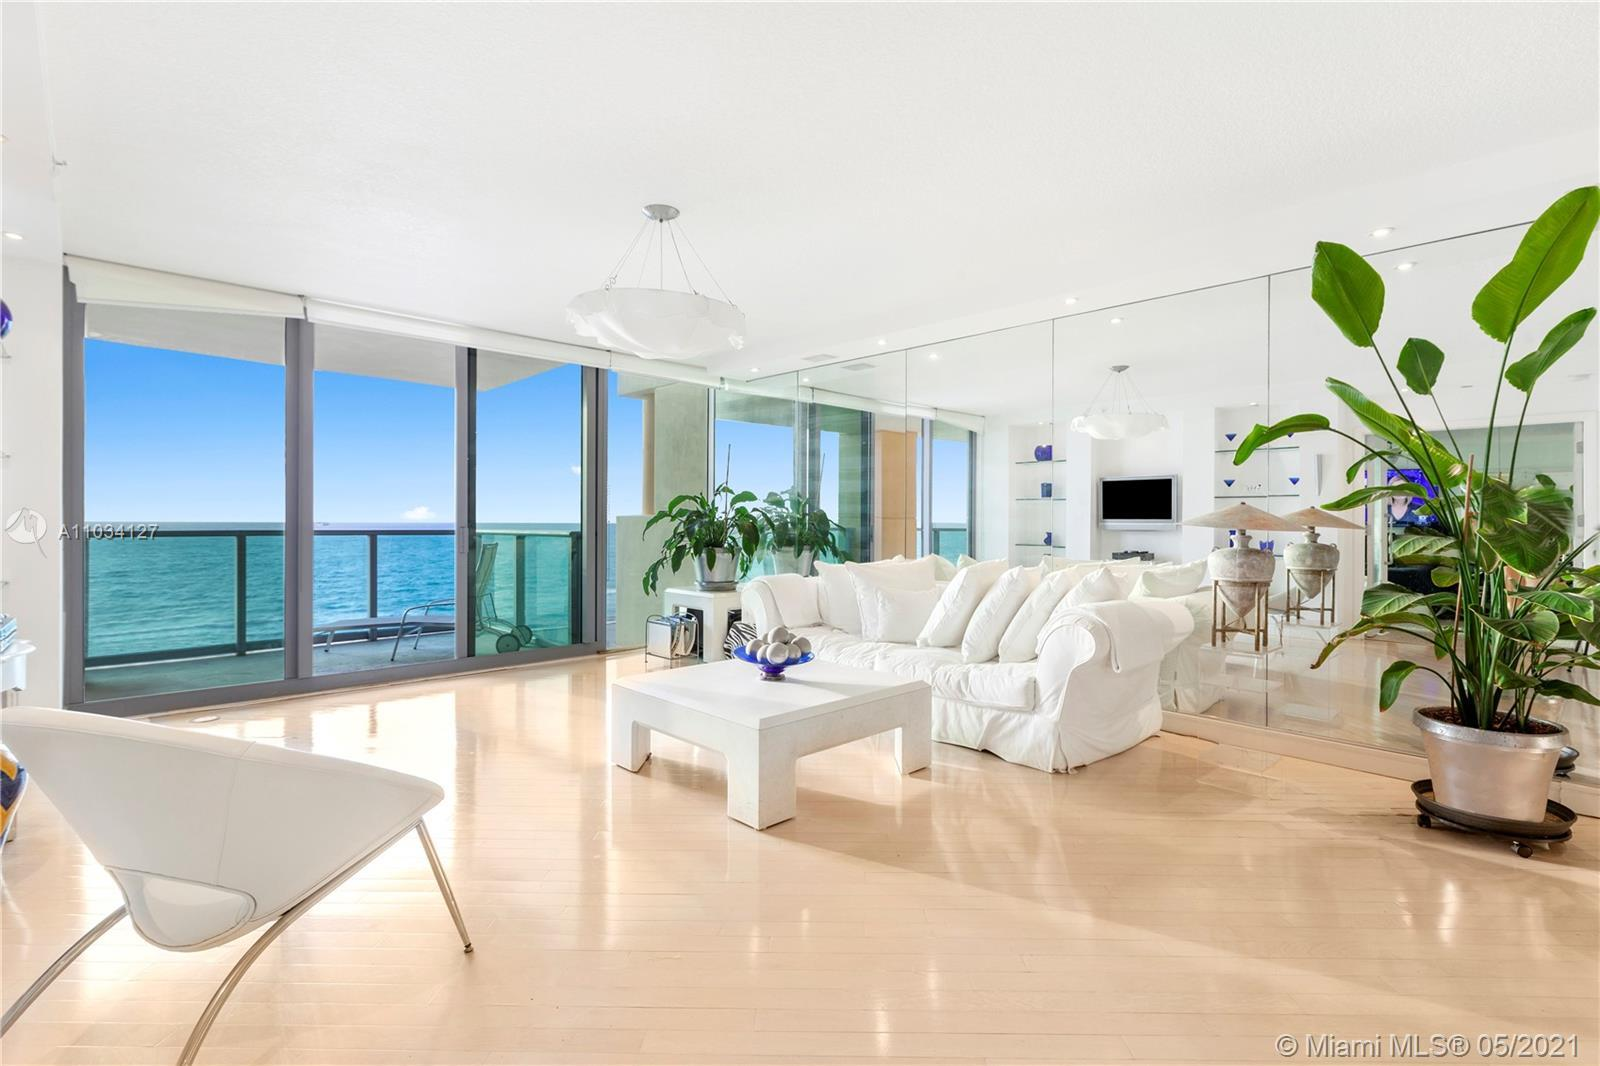 Start your dolce vita  at ll Villaggio, the finest oceanfront residence in South Beach. Enjoy sweepi